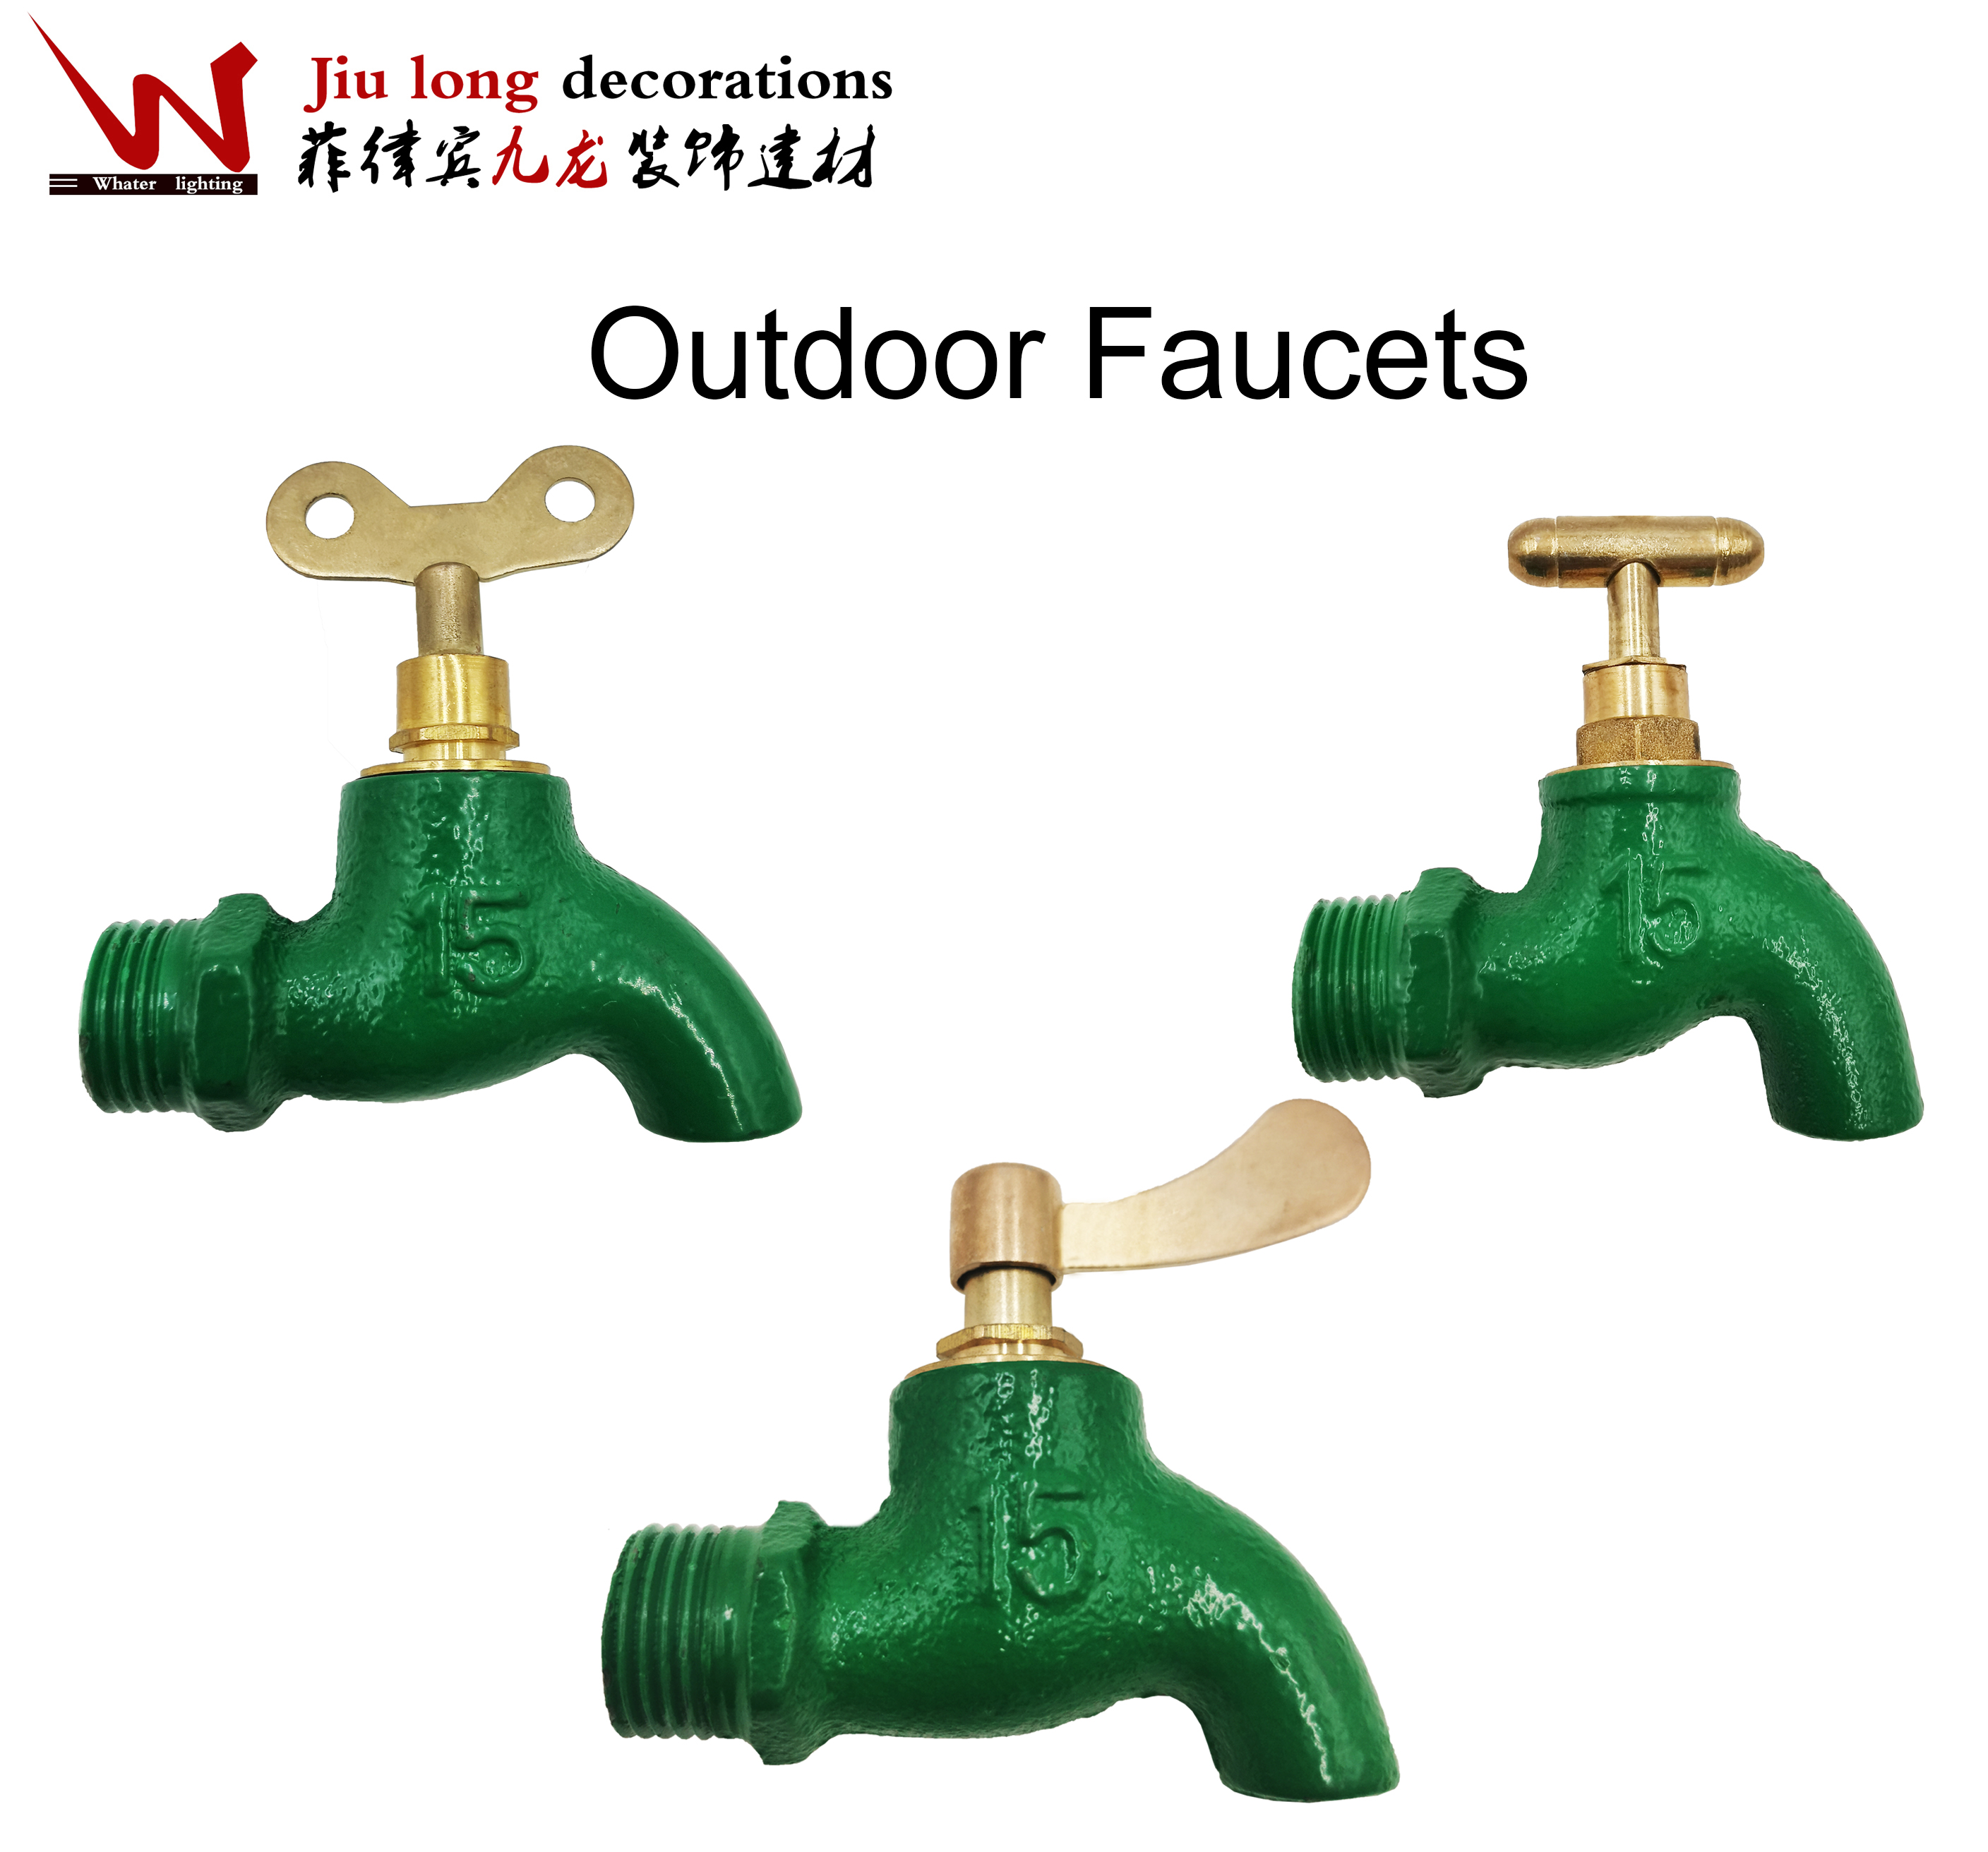 Hose Bib Garden Outdoor Faucet Buy Sell Online Bathroom Faucet With Cheap Price Lazada Ph